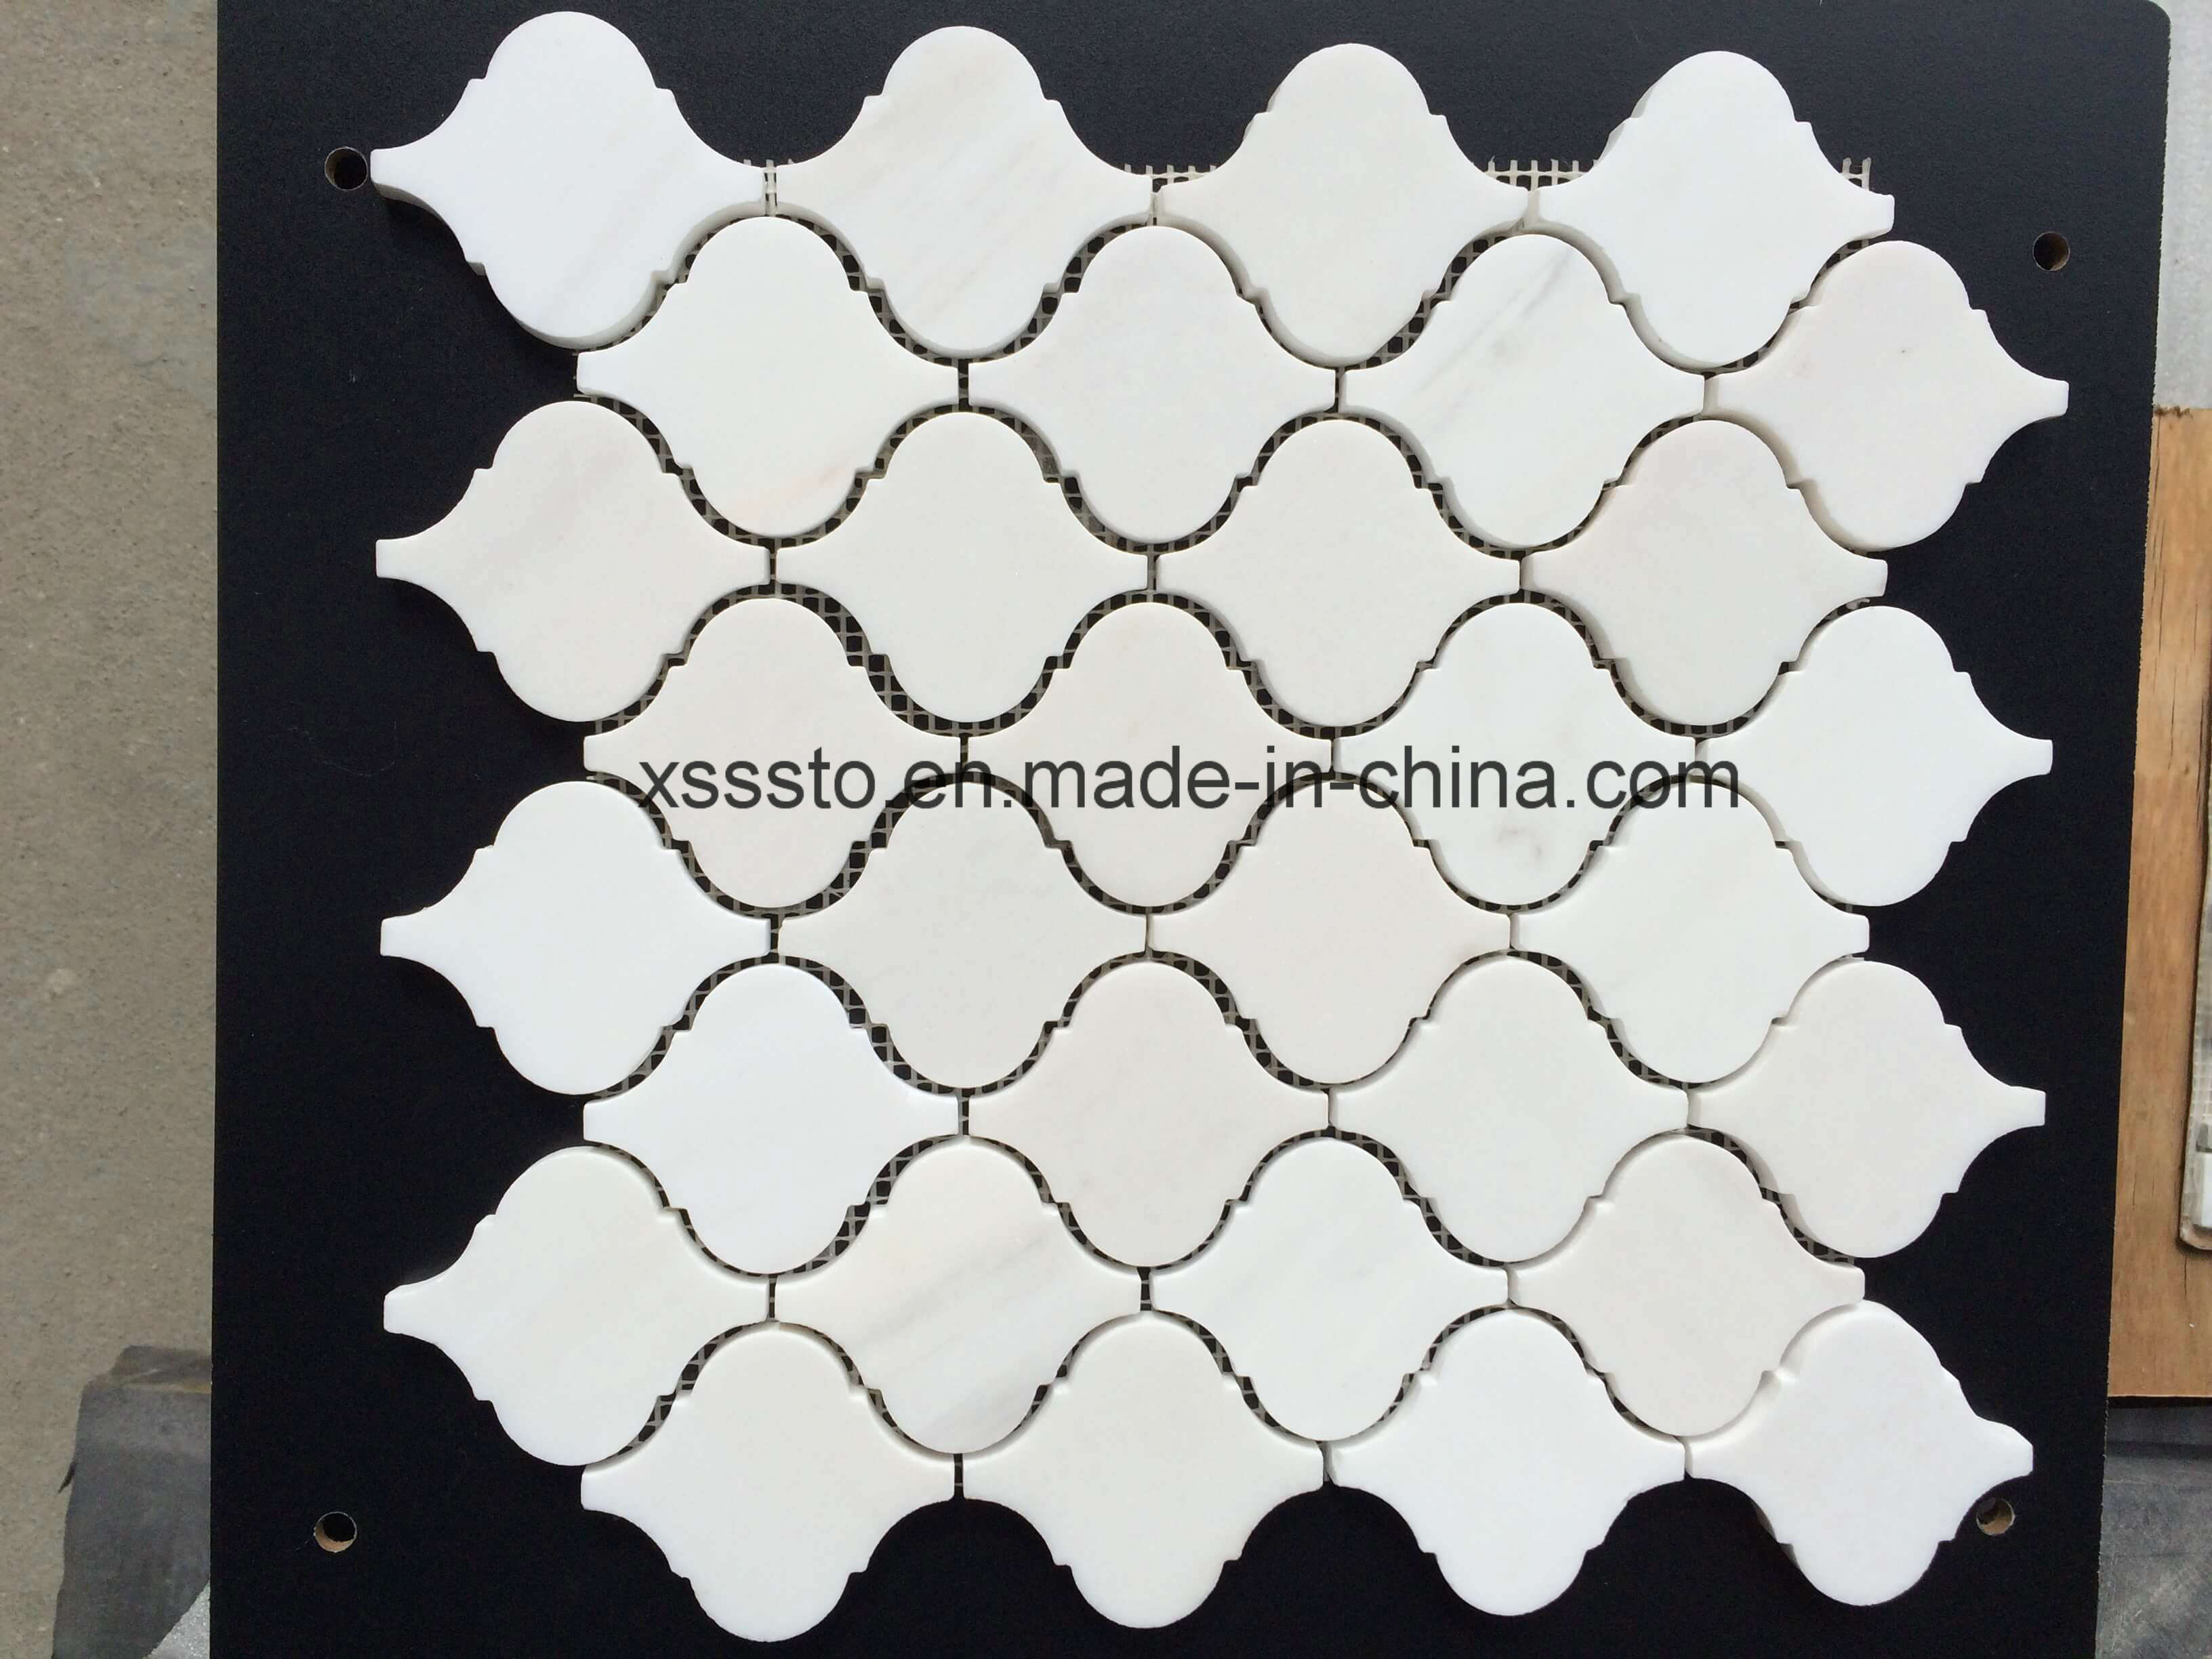 Arabesque Marble Tile Polished Arabesque Lantern Carrara White Marble Mosaic Tile For Interior